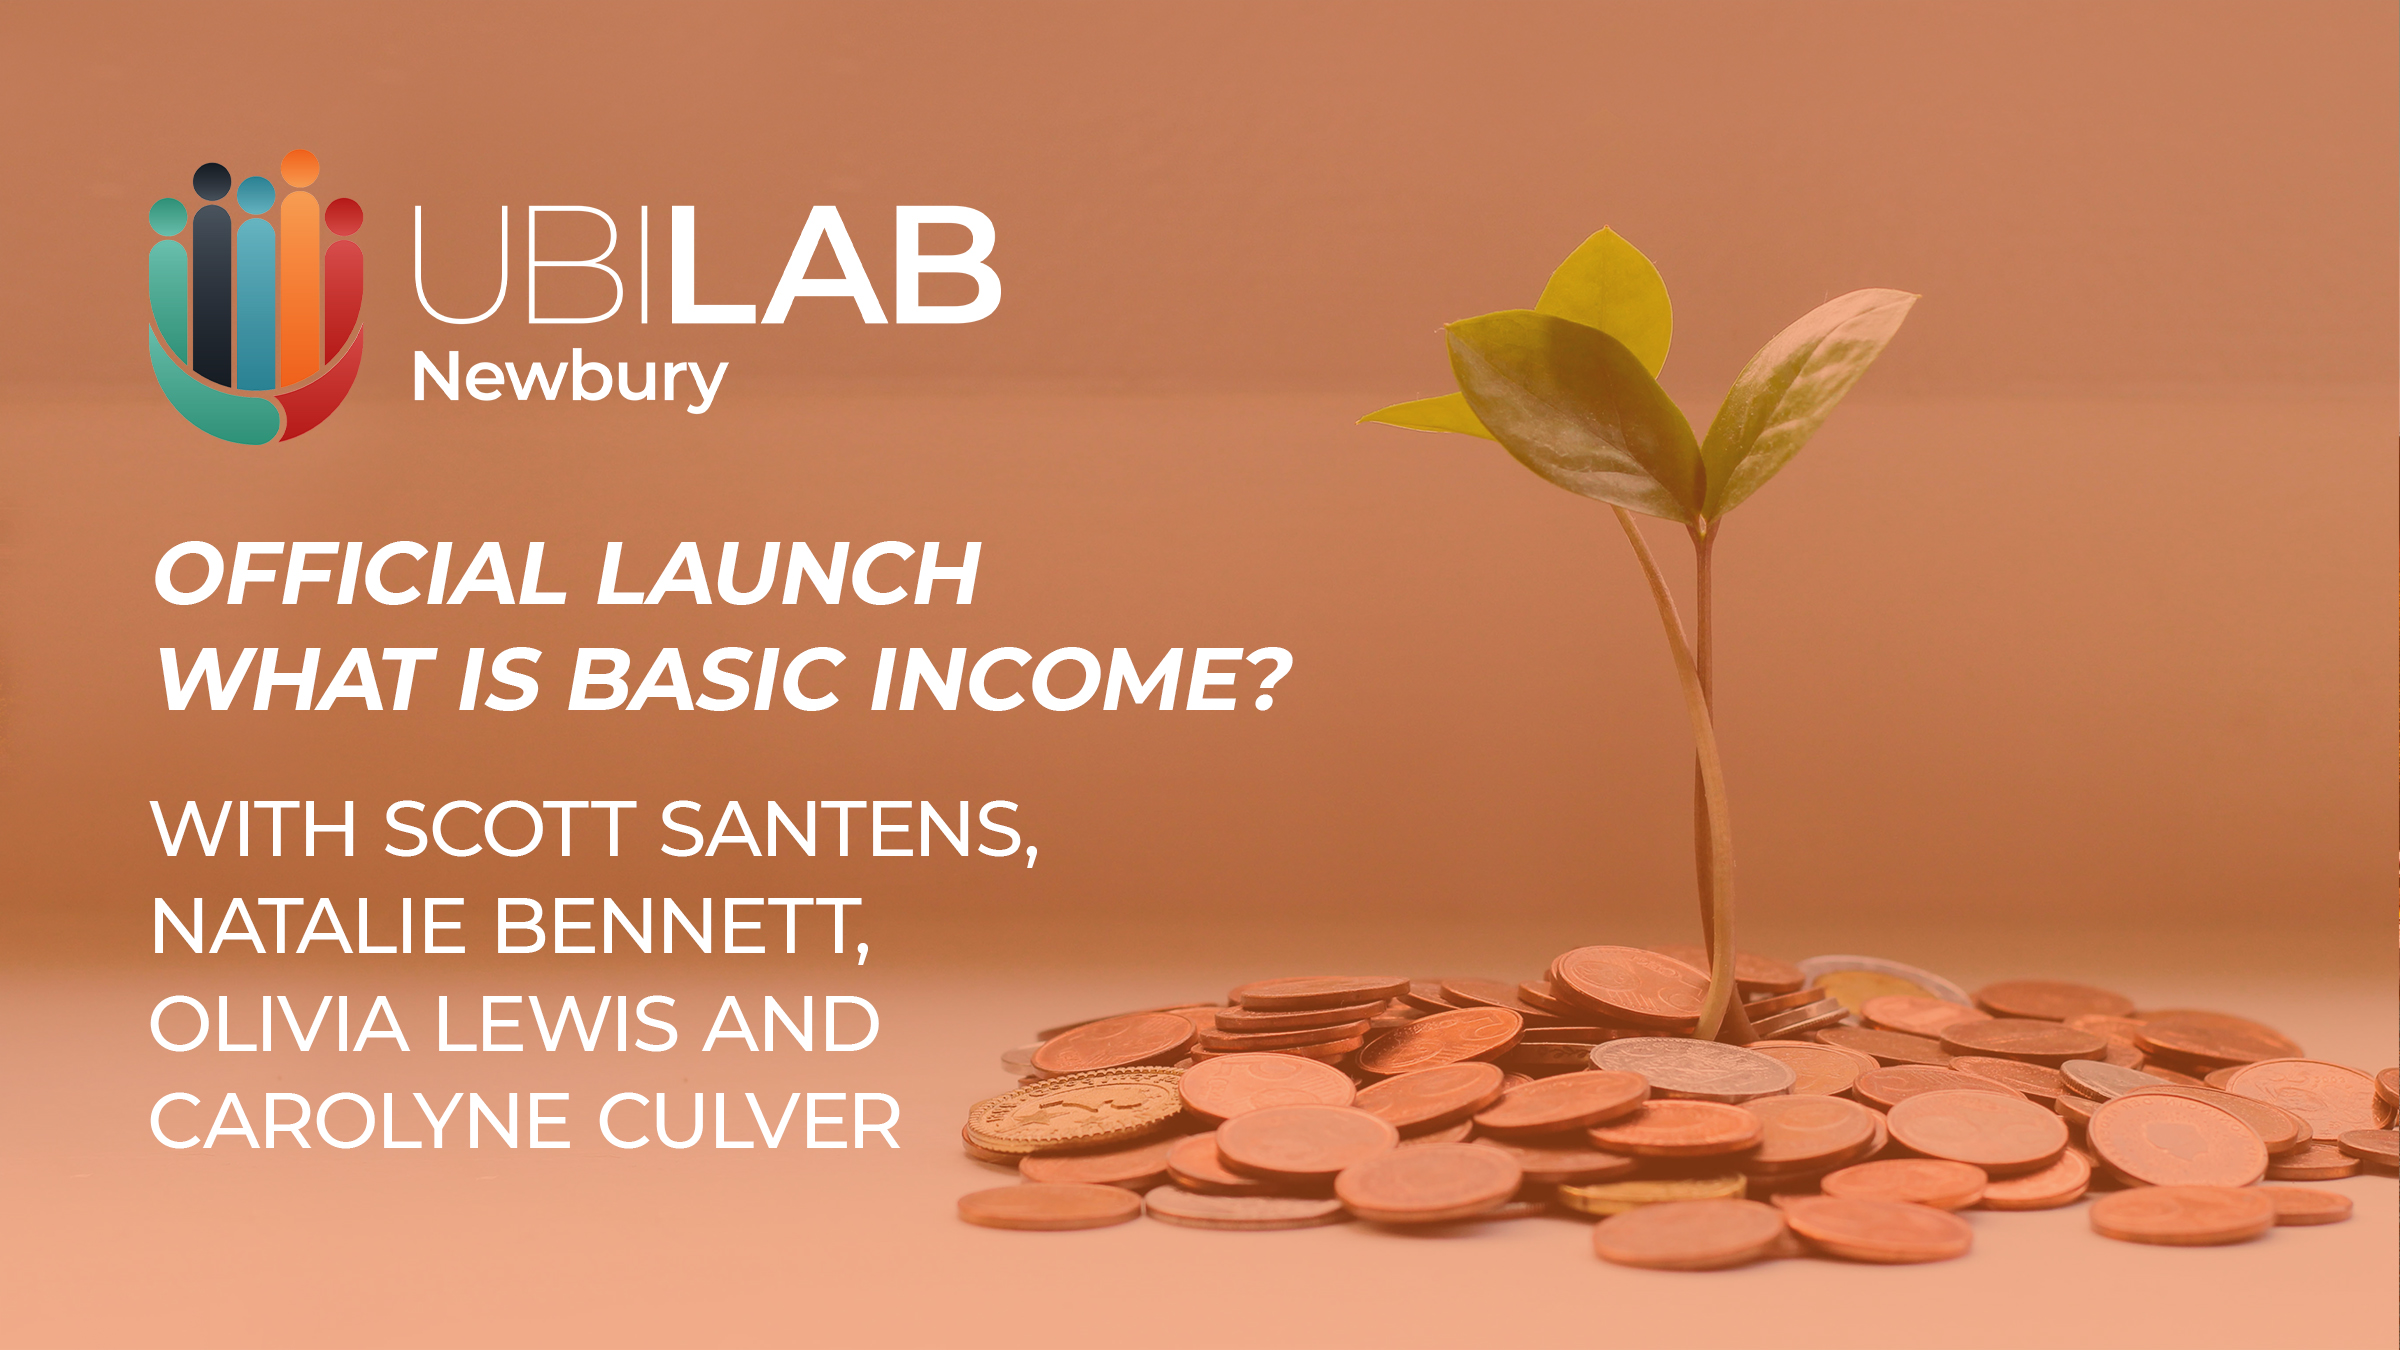 21-03-04b_what_is_basic_income_t